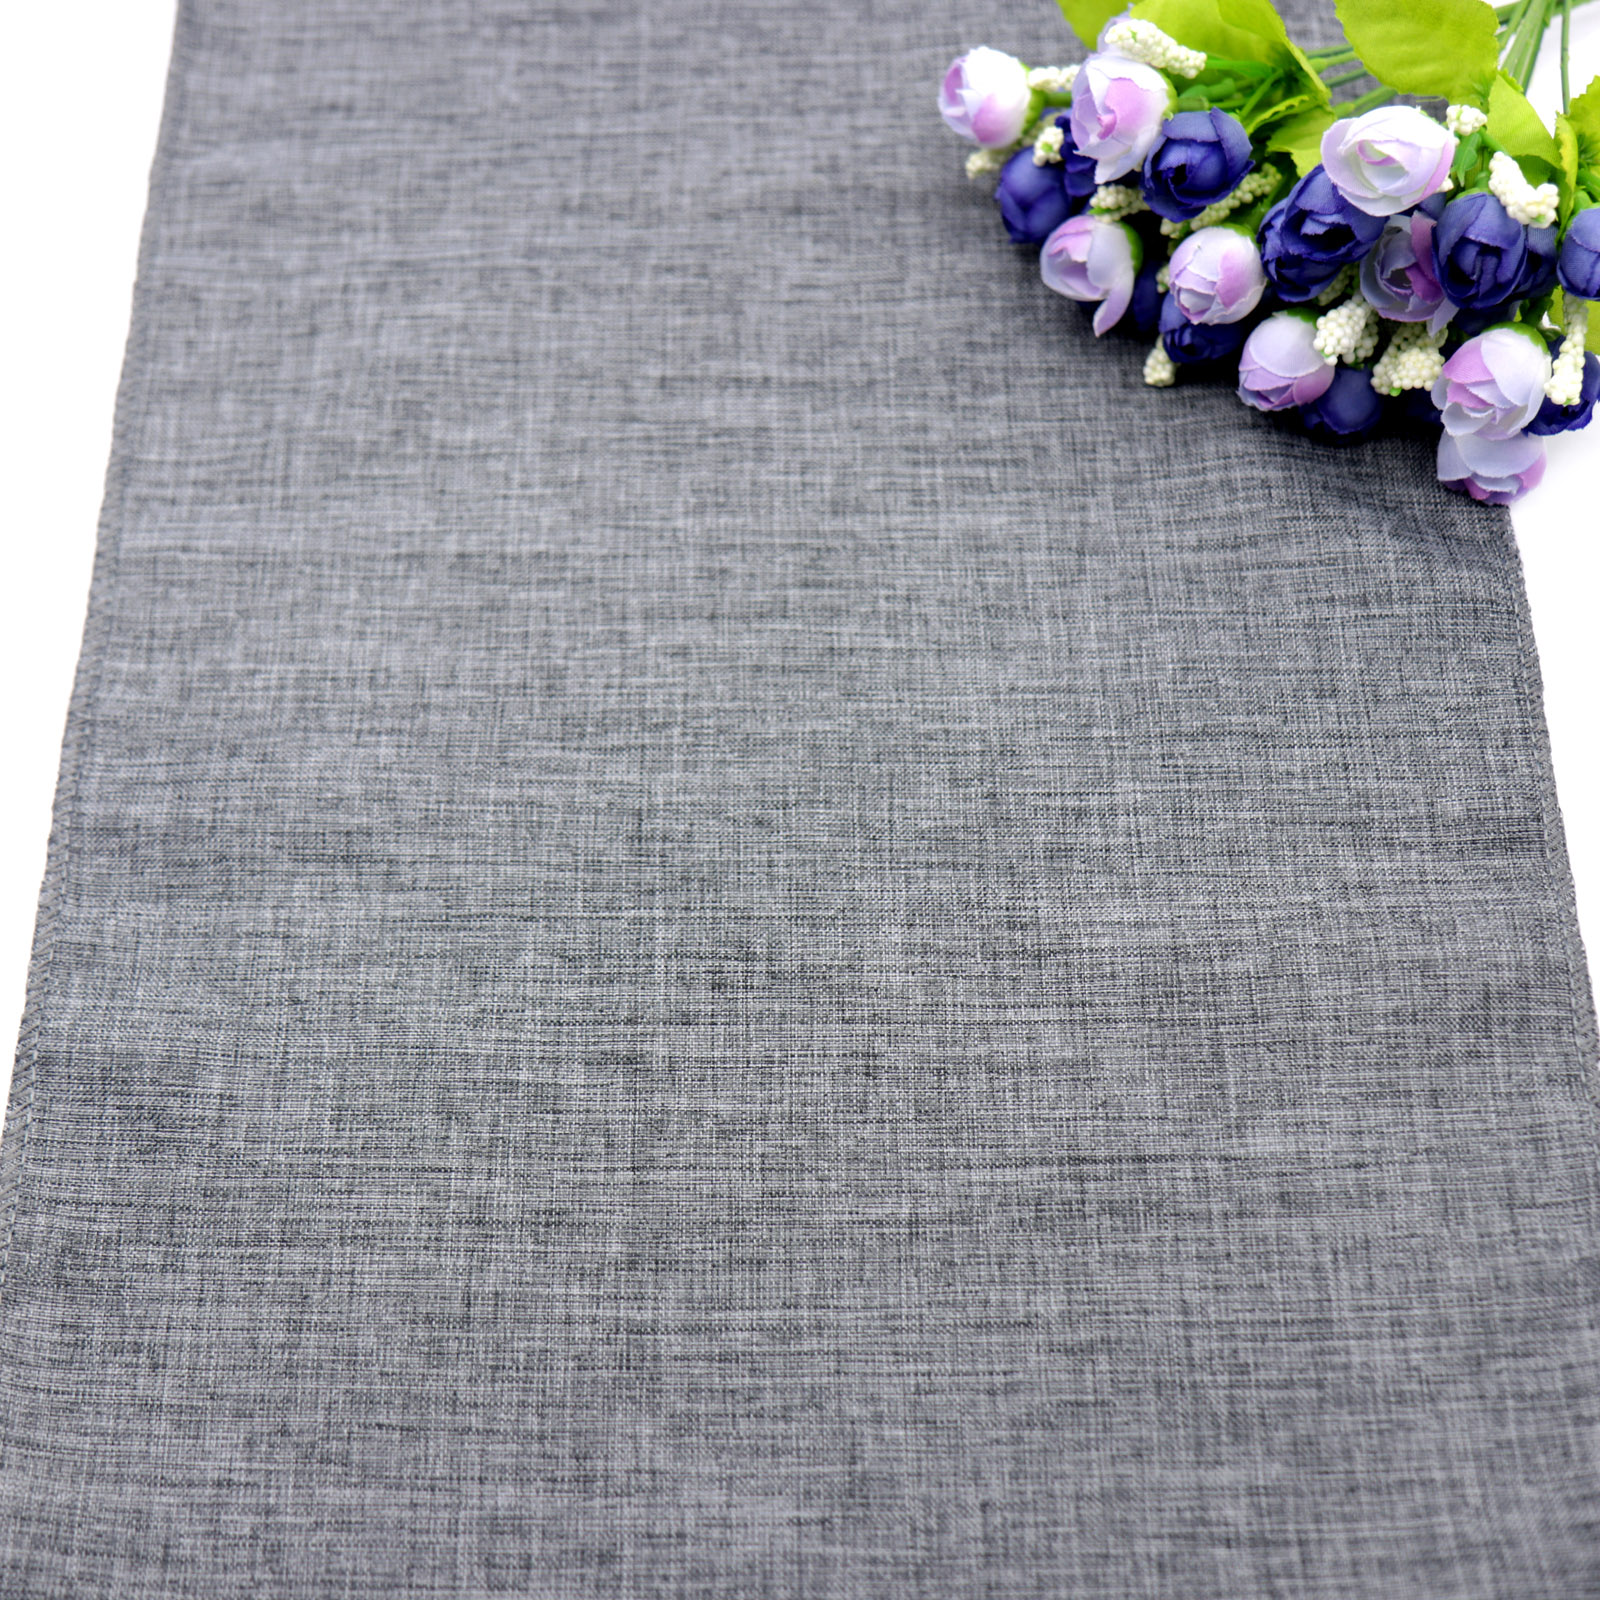 1pc NEW Gray Khaki Table Runner Imitation Linen Table Cloth Rustic Wedding Christmas Party Banquet Decoration For Dining Table